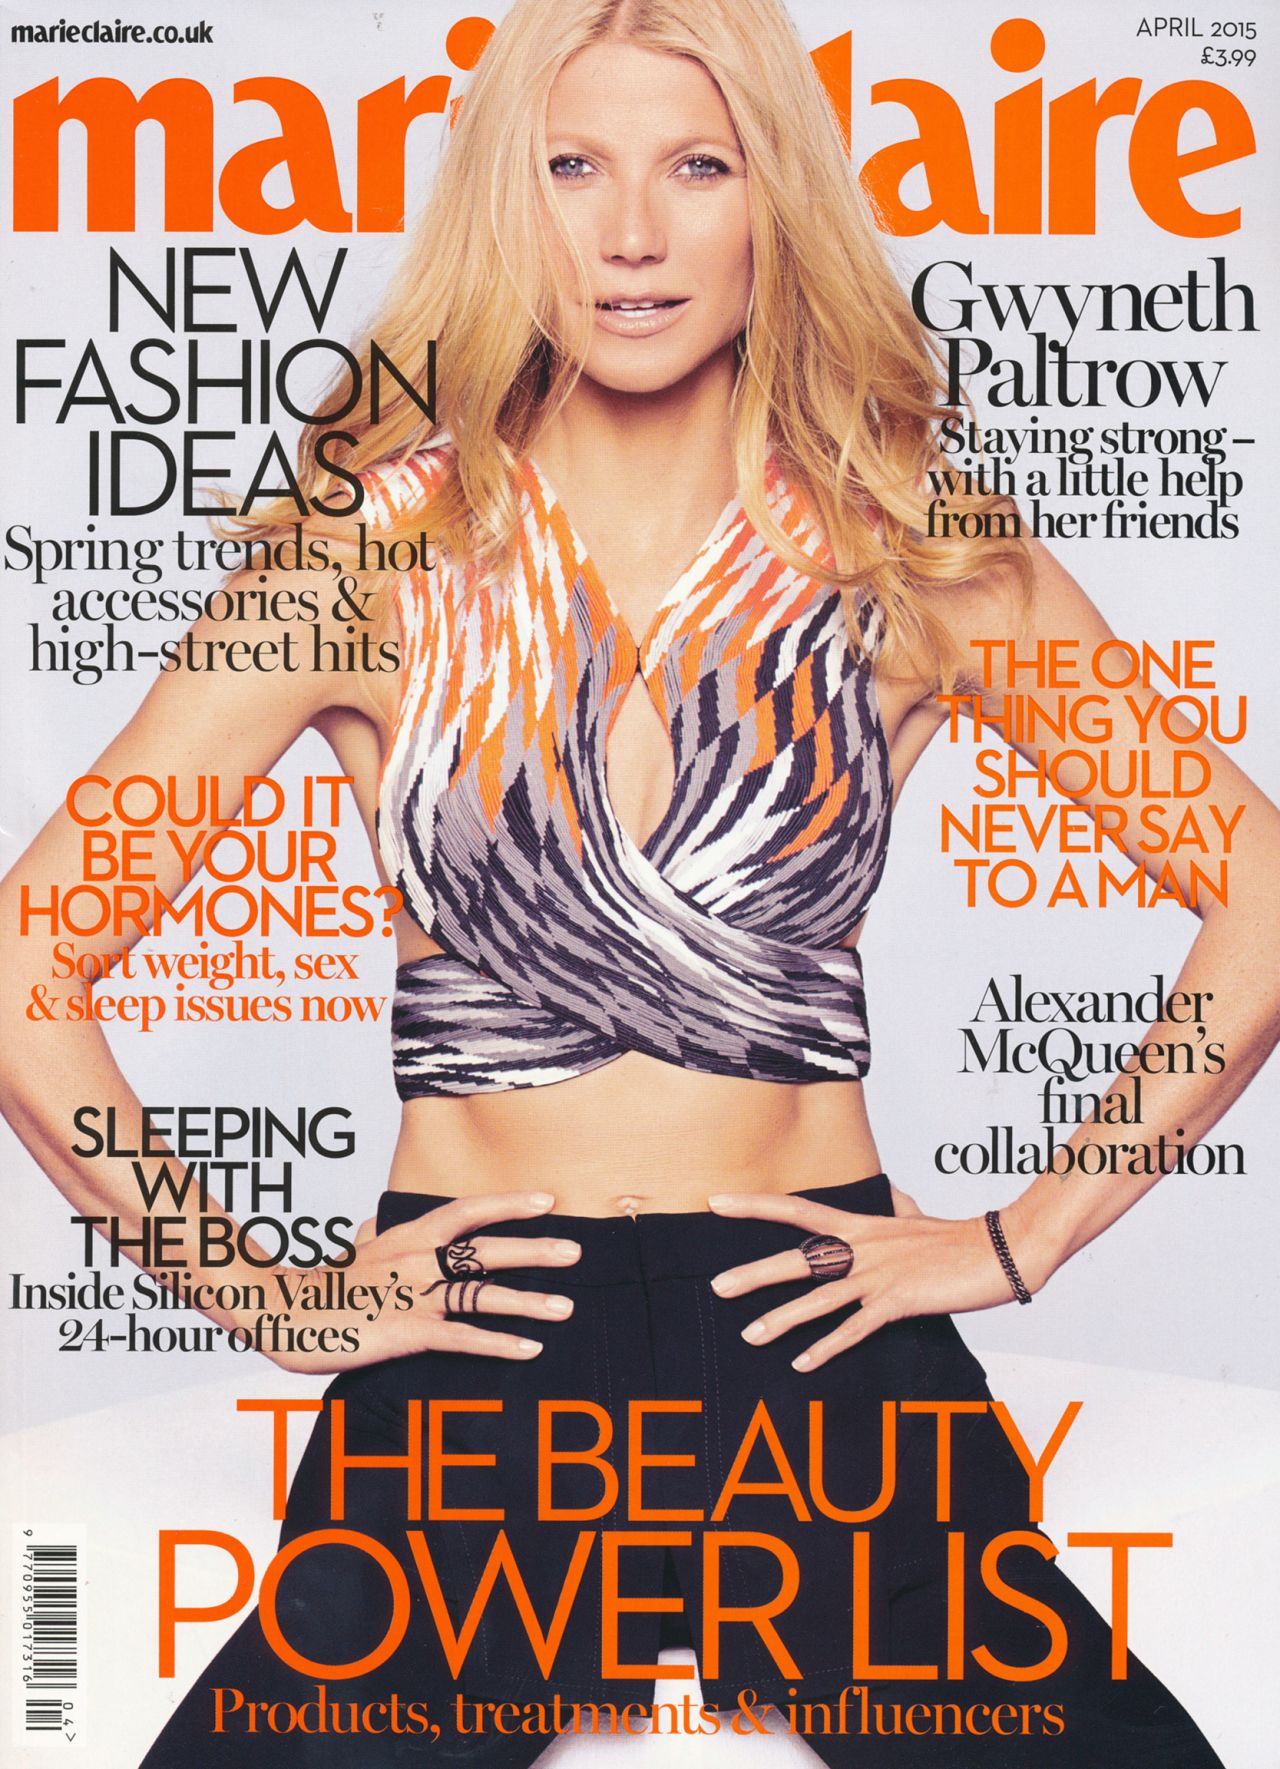 Gwyneth Paltrow - Marie Claire Magazine (UK) April 2015 Issue